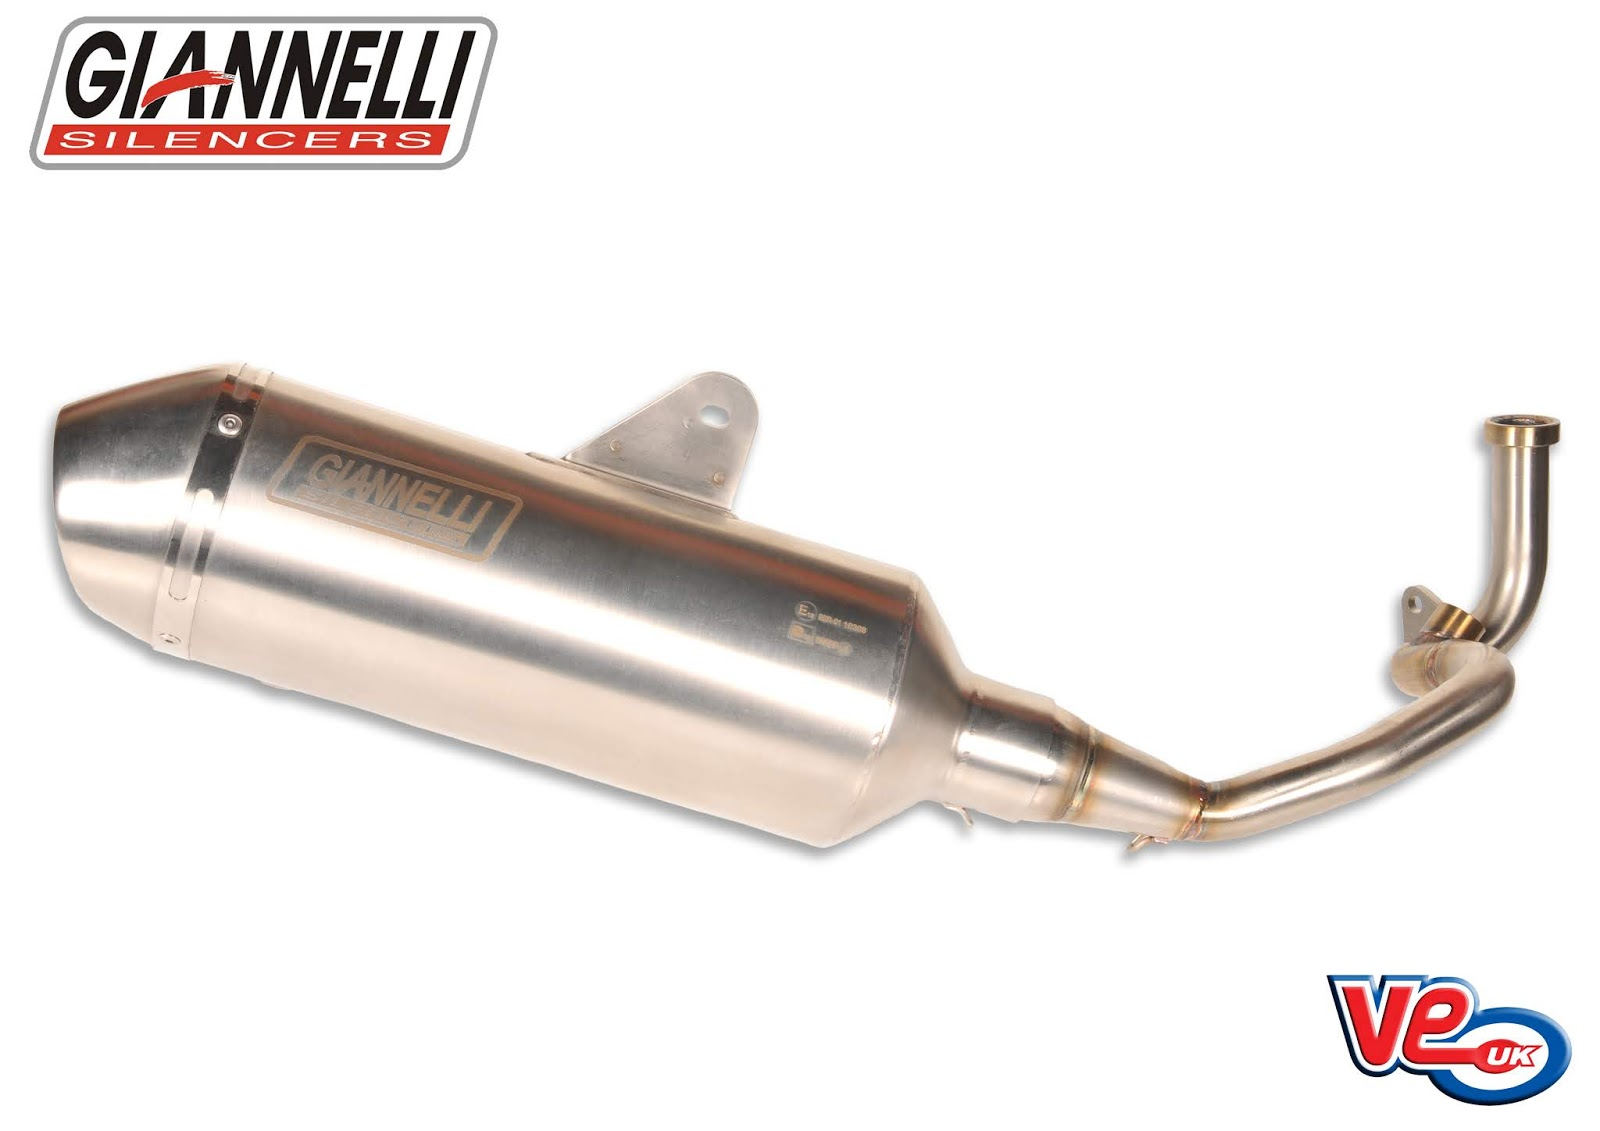 Giannelli G-4 Exhausts for Vespa GTS 125 and Primavera 125